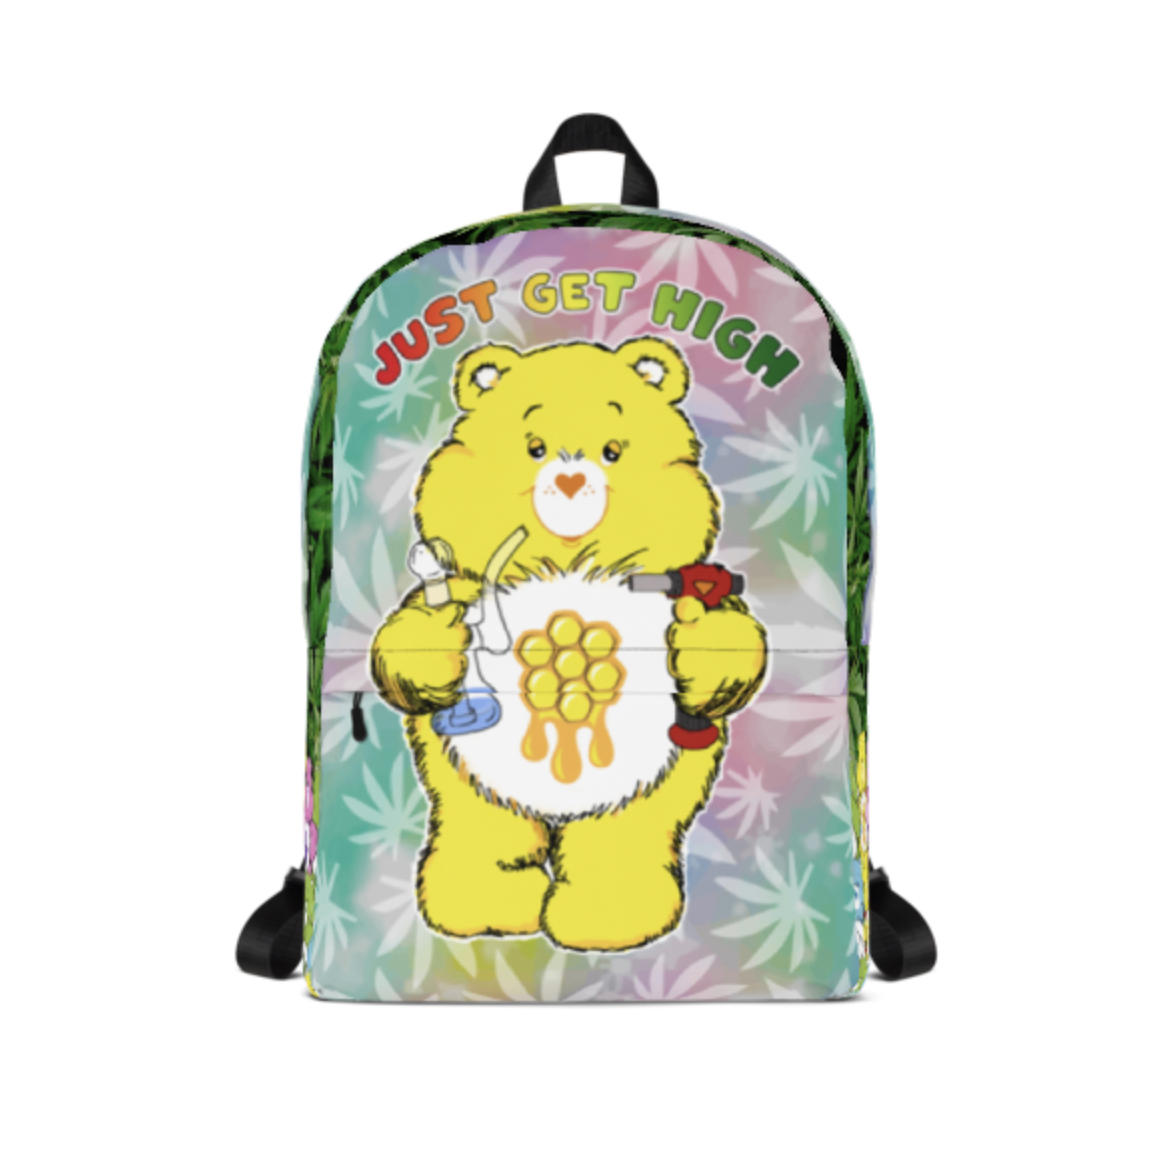 just get high_backpack_cannabear dab_front